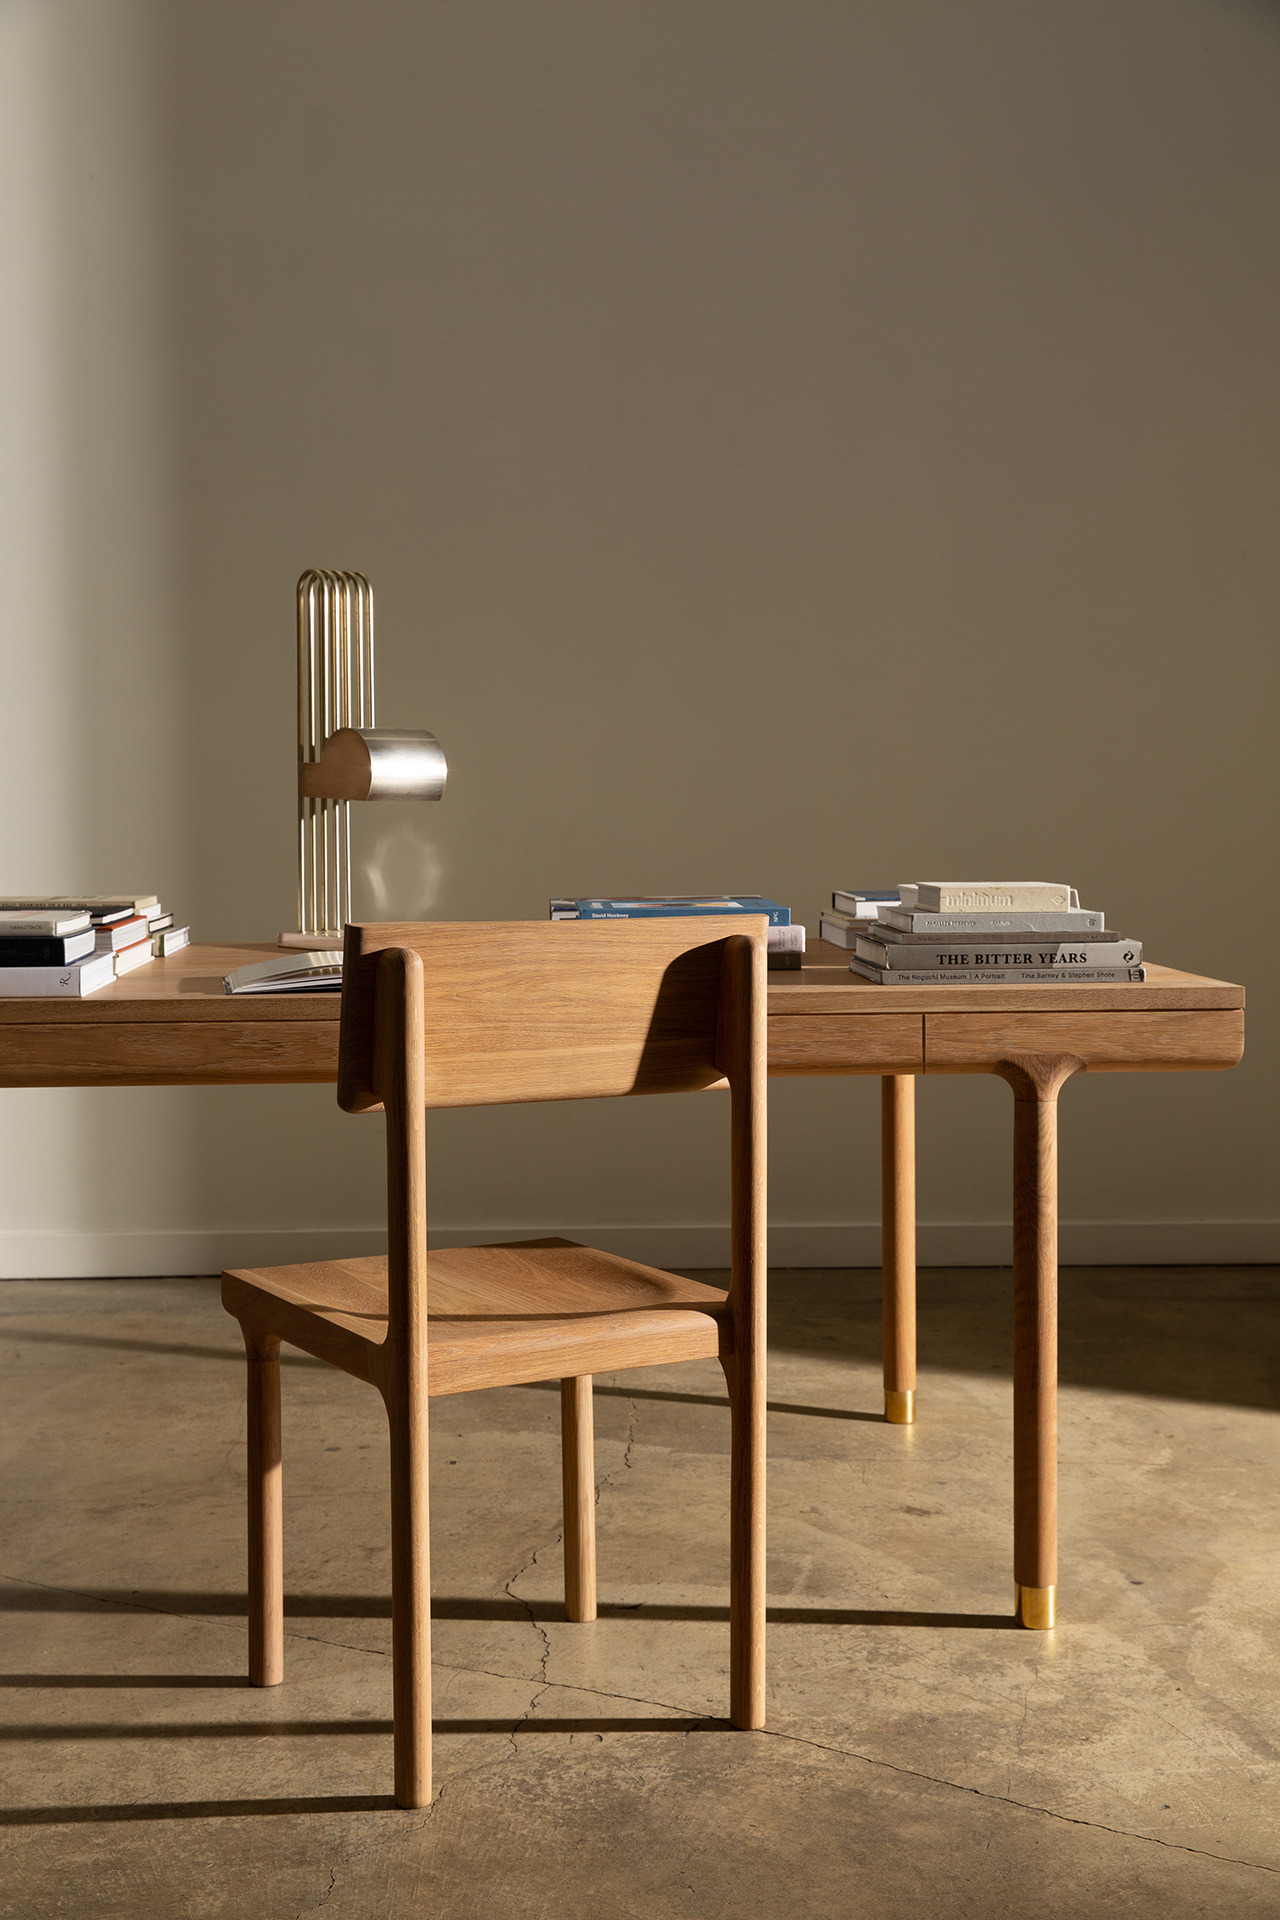 Oak dining chair and desk with accessories in light room